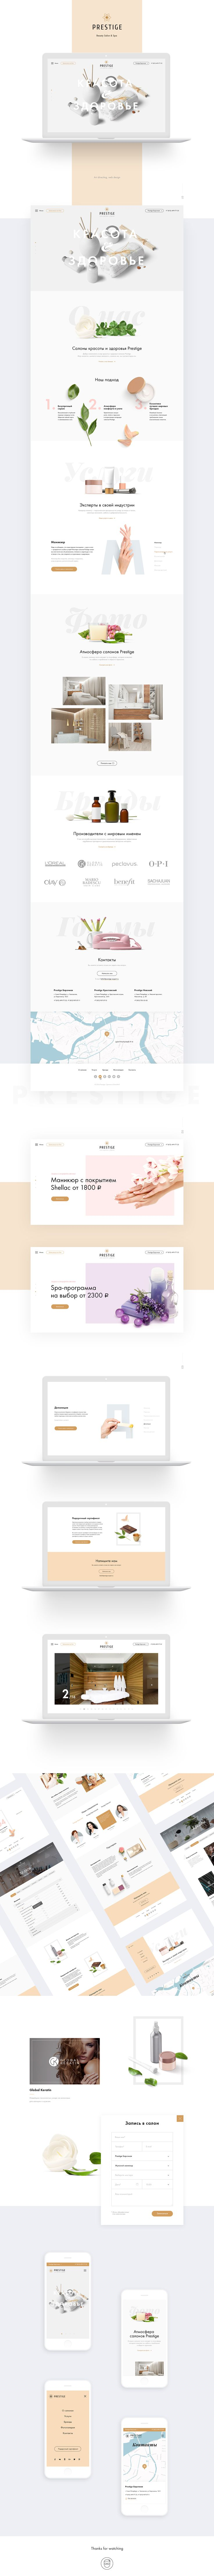 Beauty & Spa salon Presige website. Art Direction, Design. 2016.Watch live: prestige-expert.ru https://xtremefreelance.com/